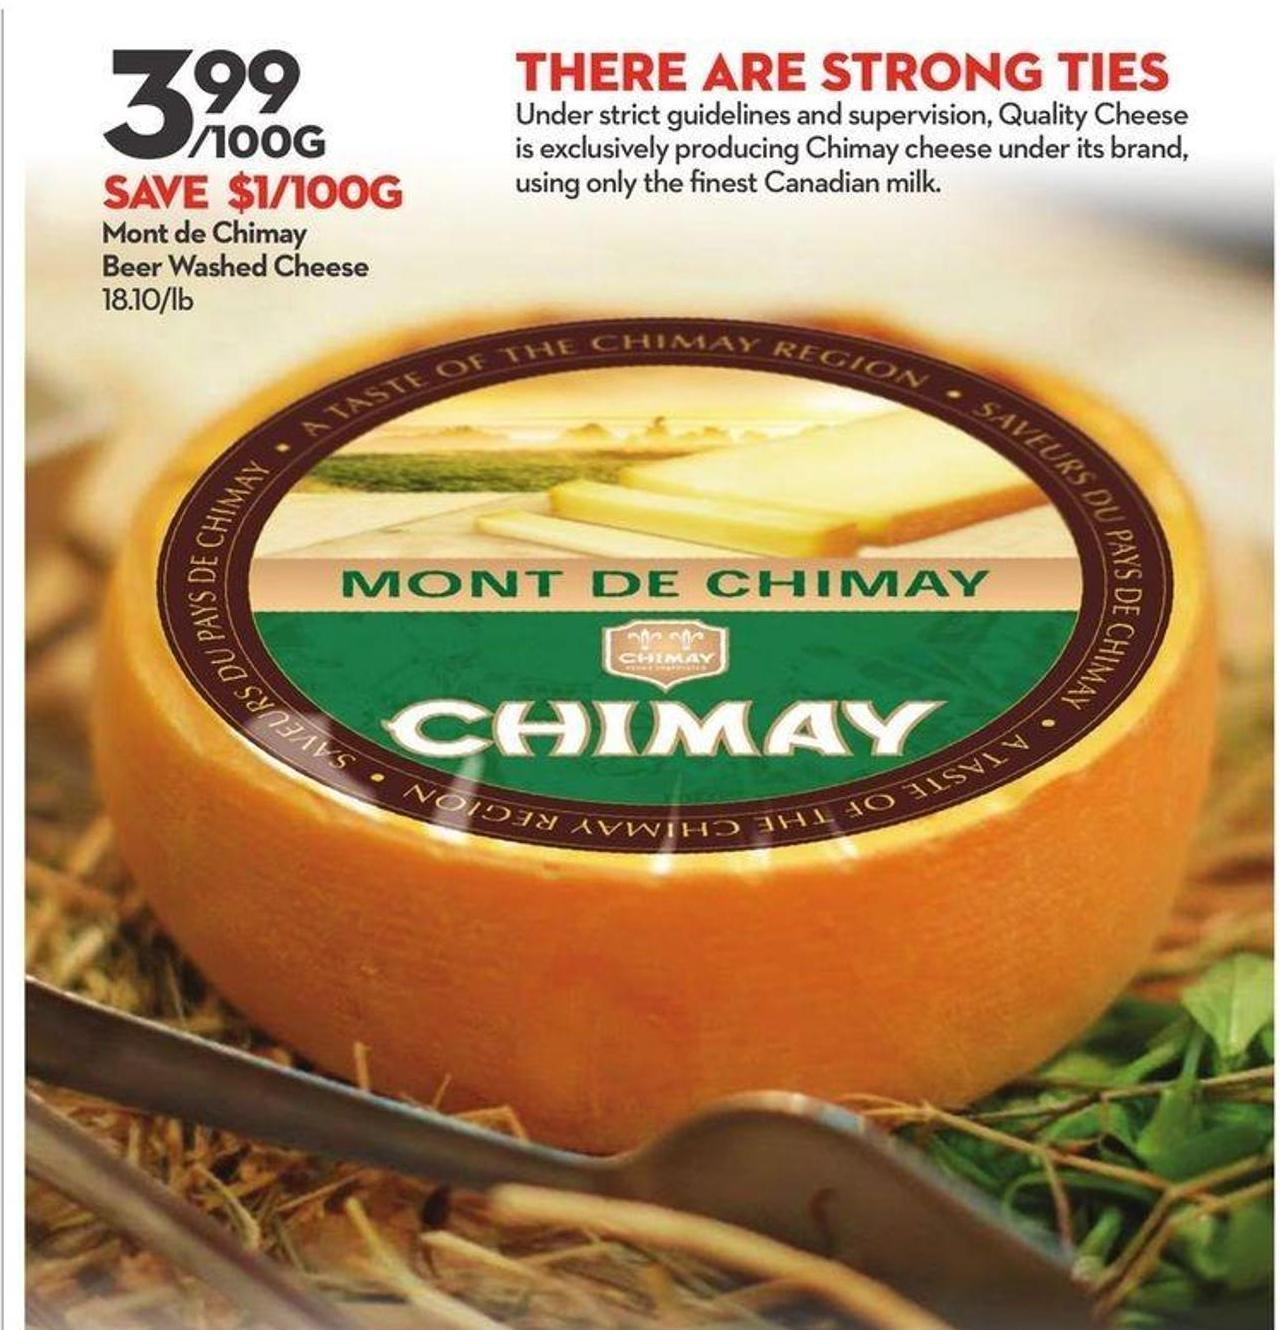 Mont de Chimay Beer Washed Cheese